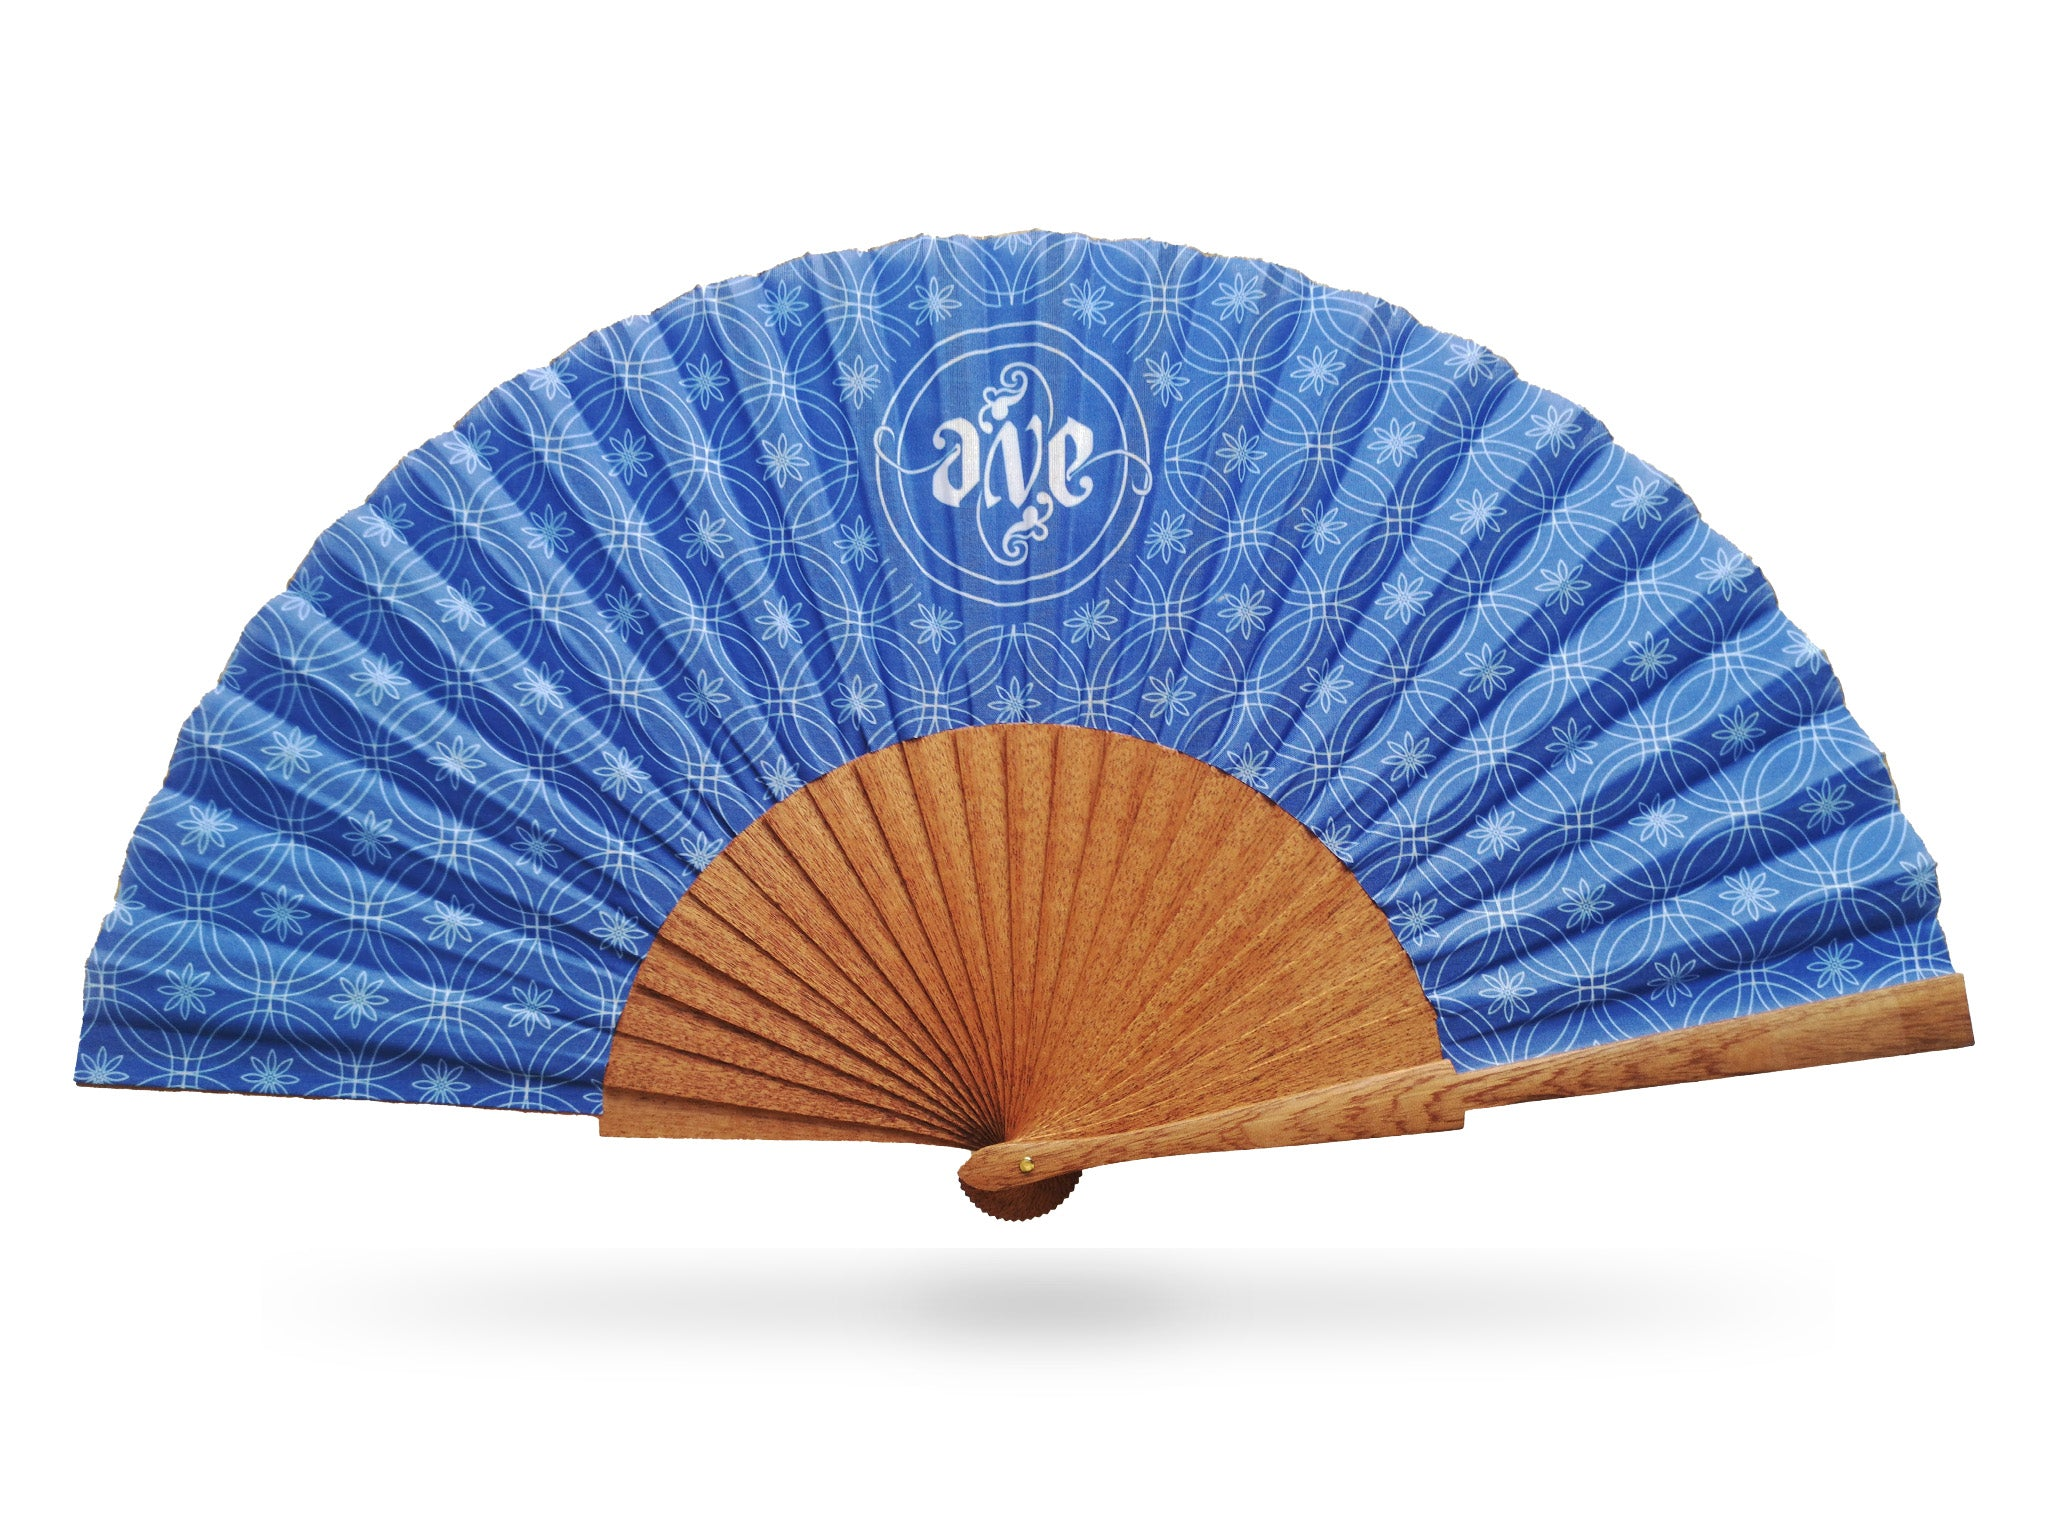 Khu Khu Private Commission Hand-Fan example - Blue and White print with natural sipo wood